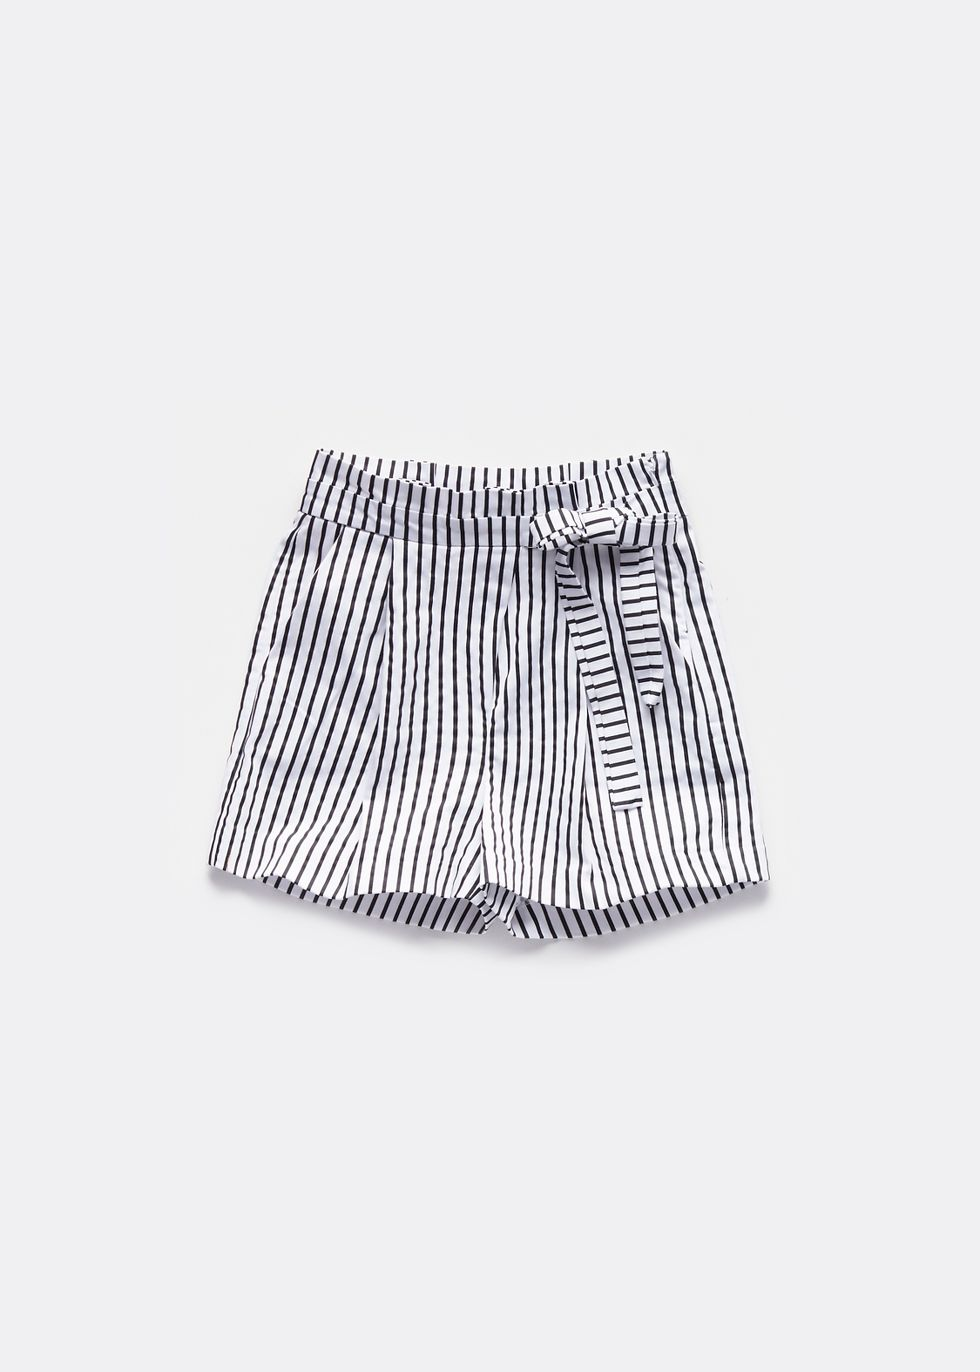 Belted Shorts   The Sting